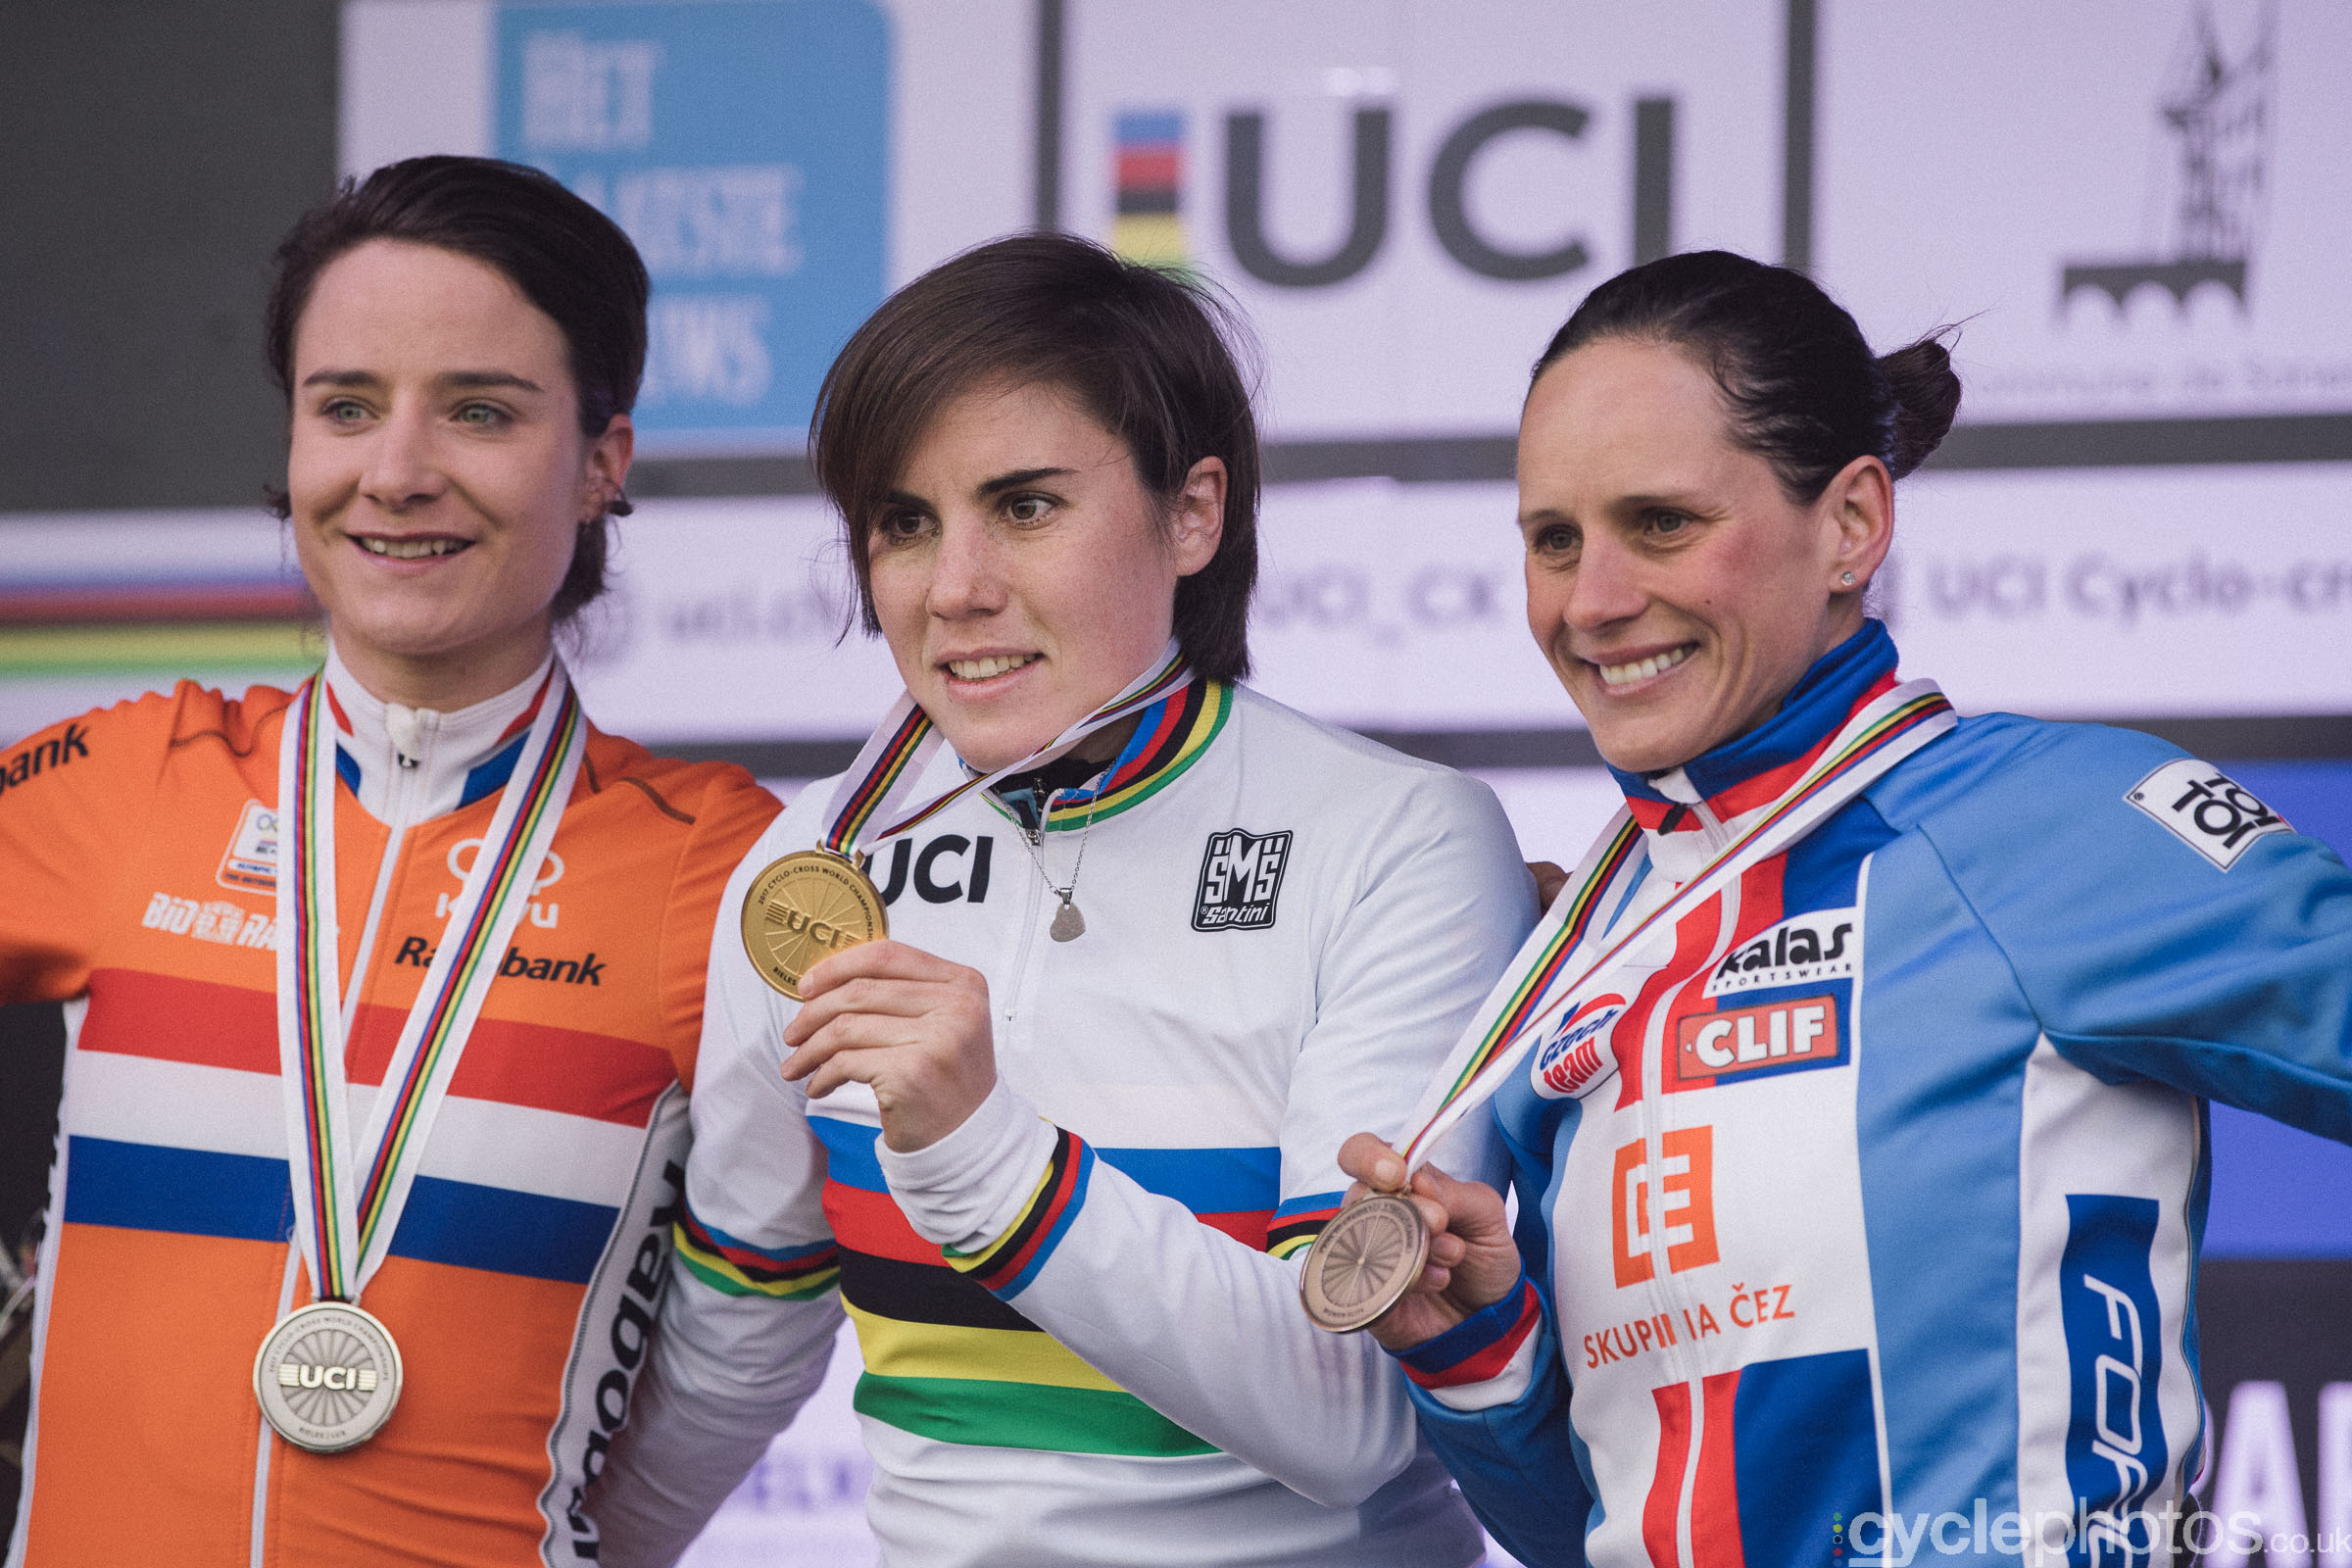 Women's Race UCI 2017 Cyclocross World Championships january 2017, Bieles/Luxemburg